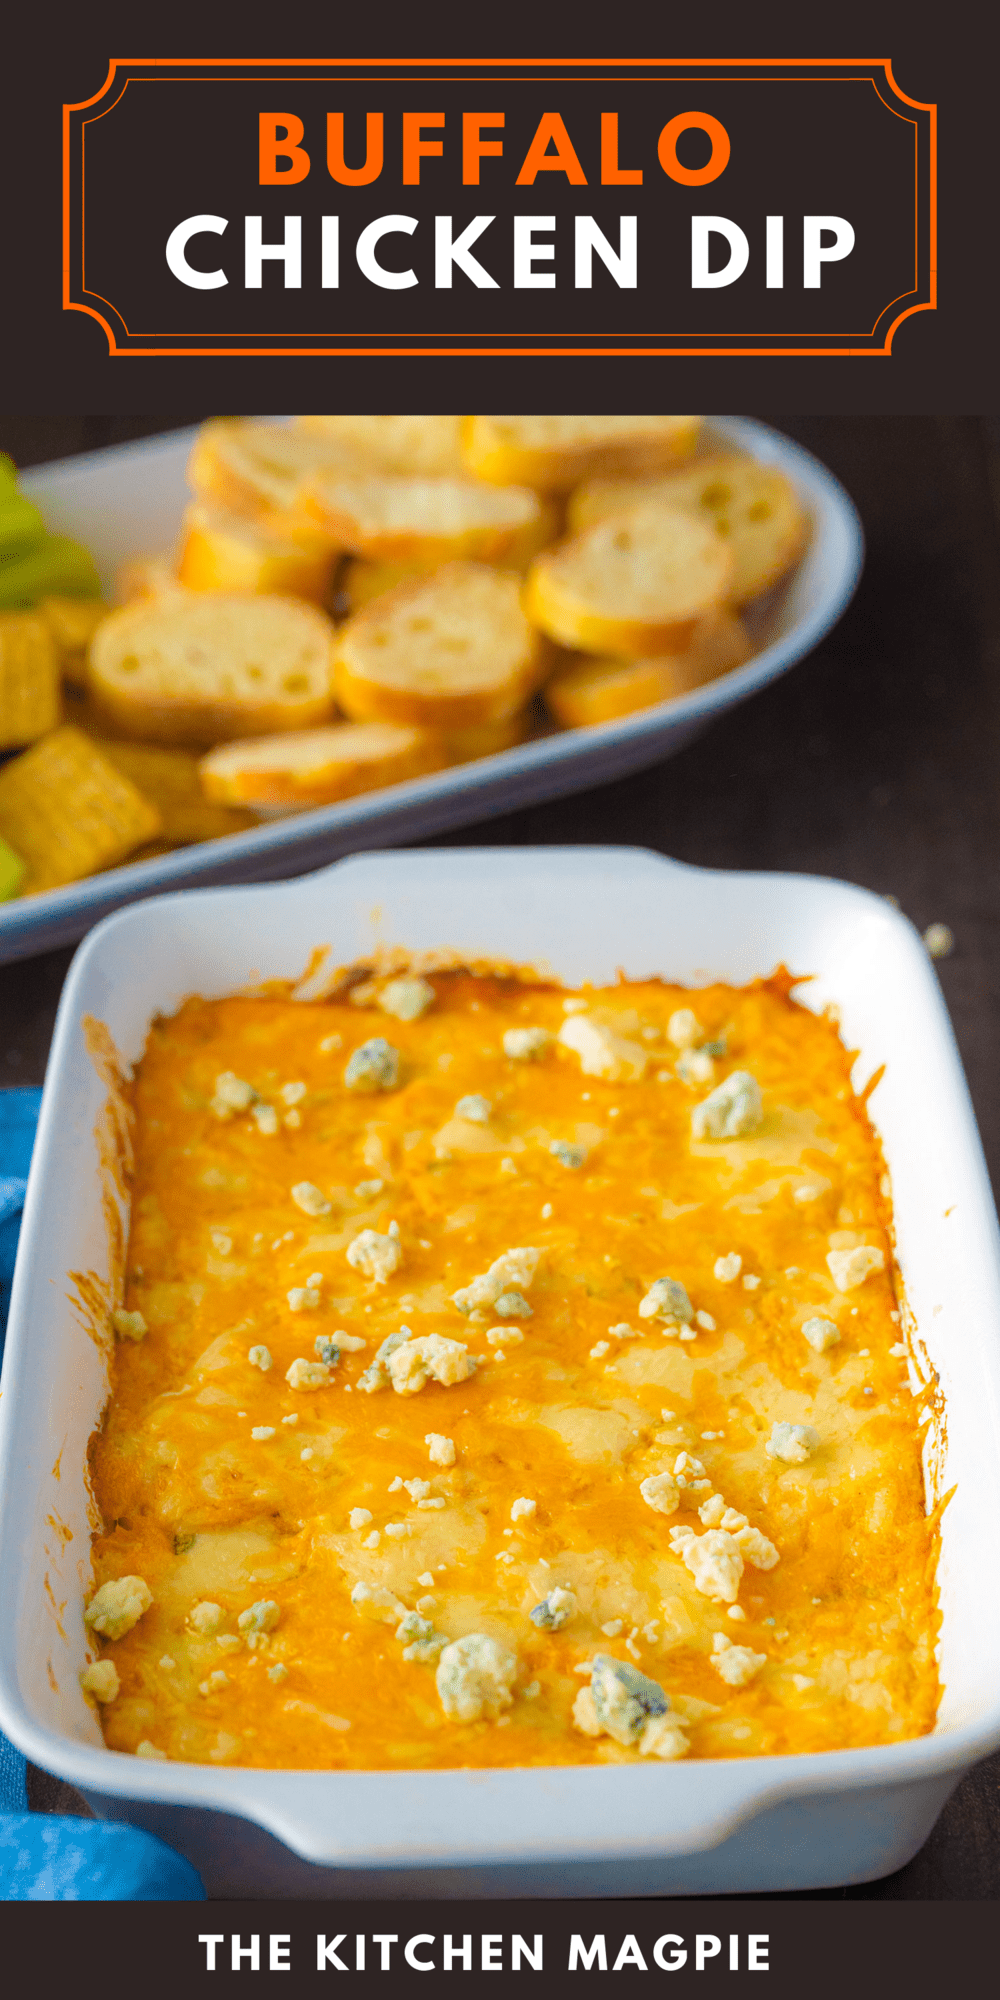 Hot, cheesy buffalo chicken dip that is sure to be a hit at your game day gathering or your holiday party!